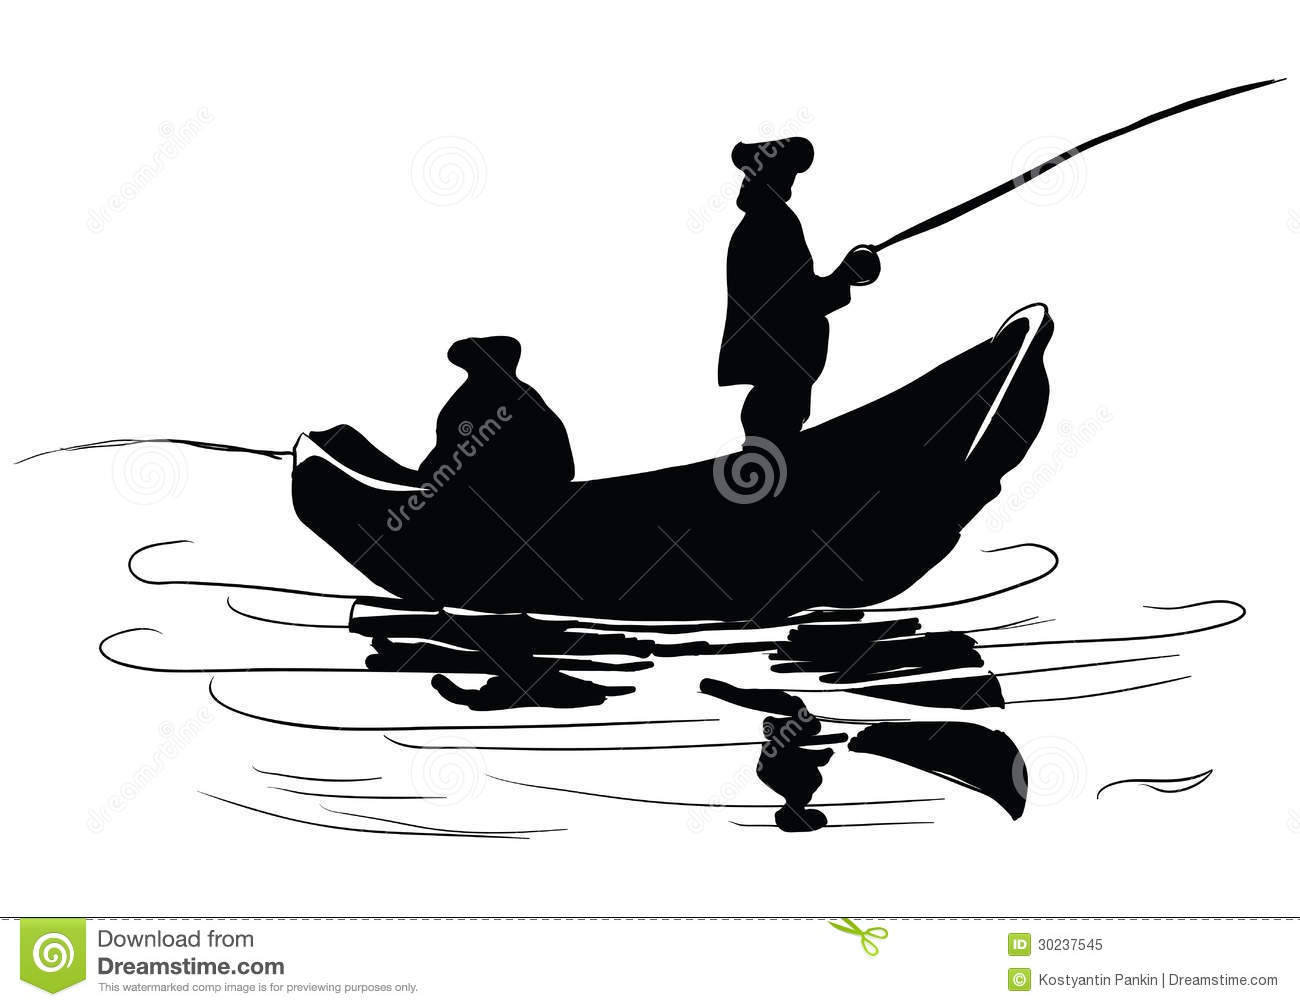 Fishermen In A Boat Royalty Free Stock Photo - Image: 30237545